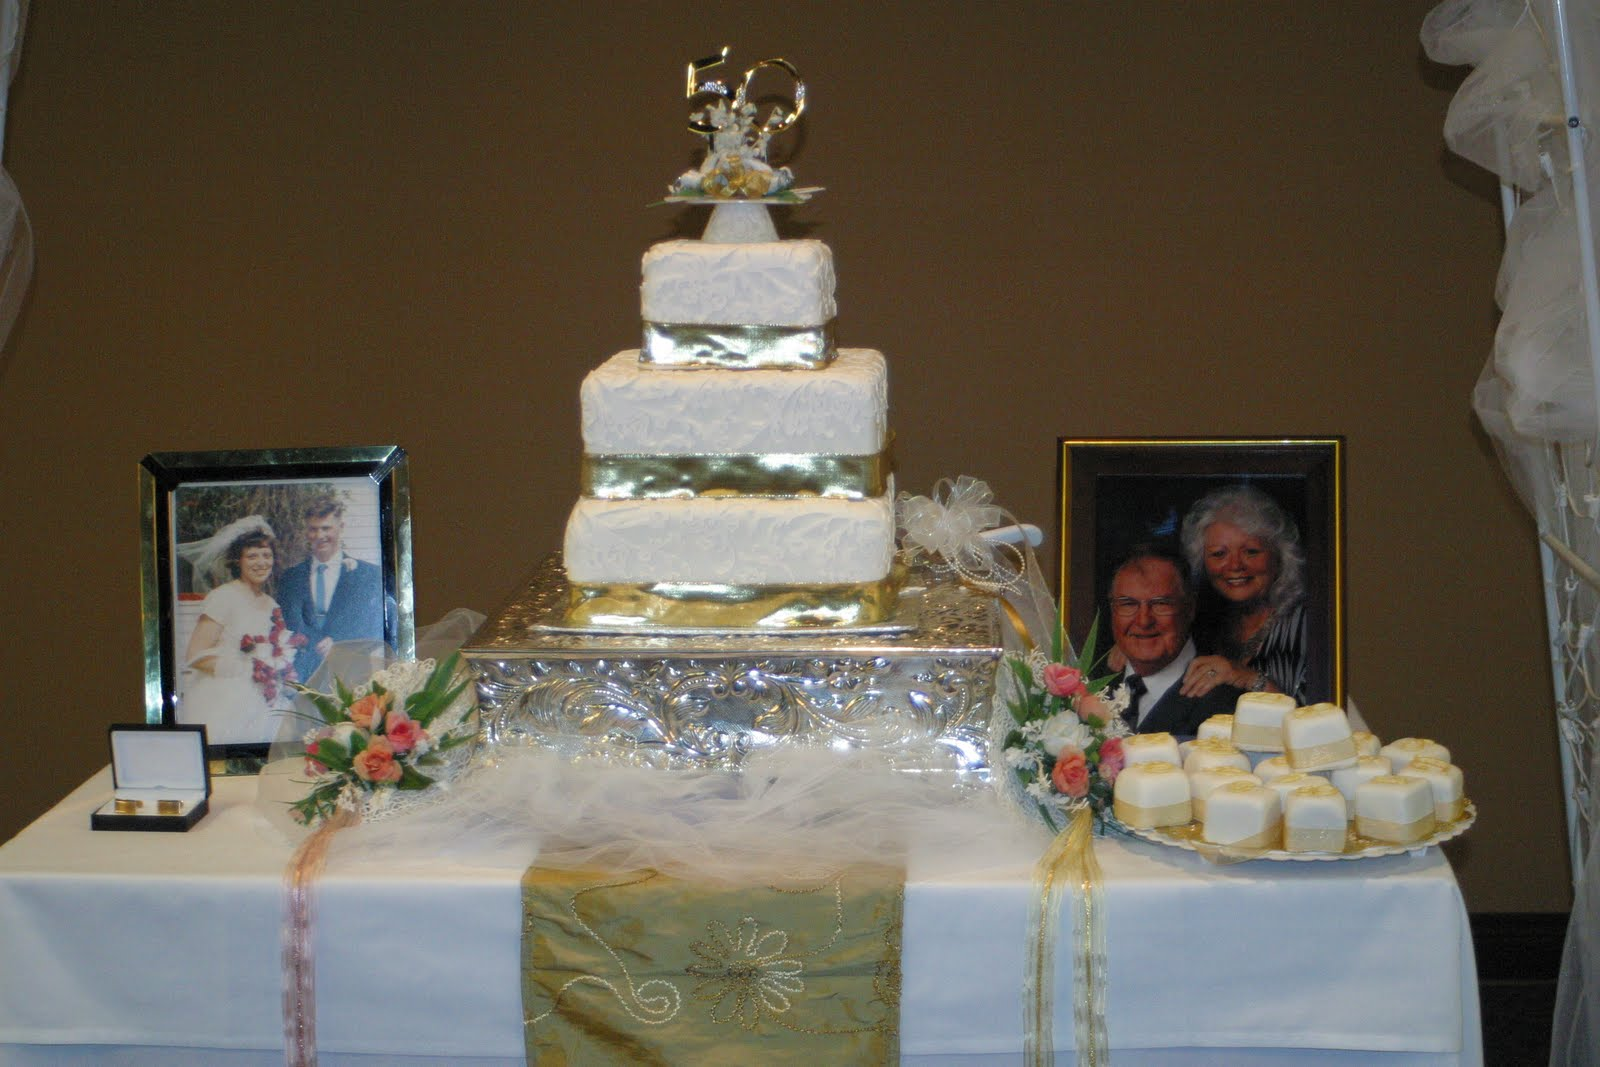 50th wedding anniversary decoration ideas romantic for 50th birthday cake decoration ideas